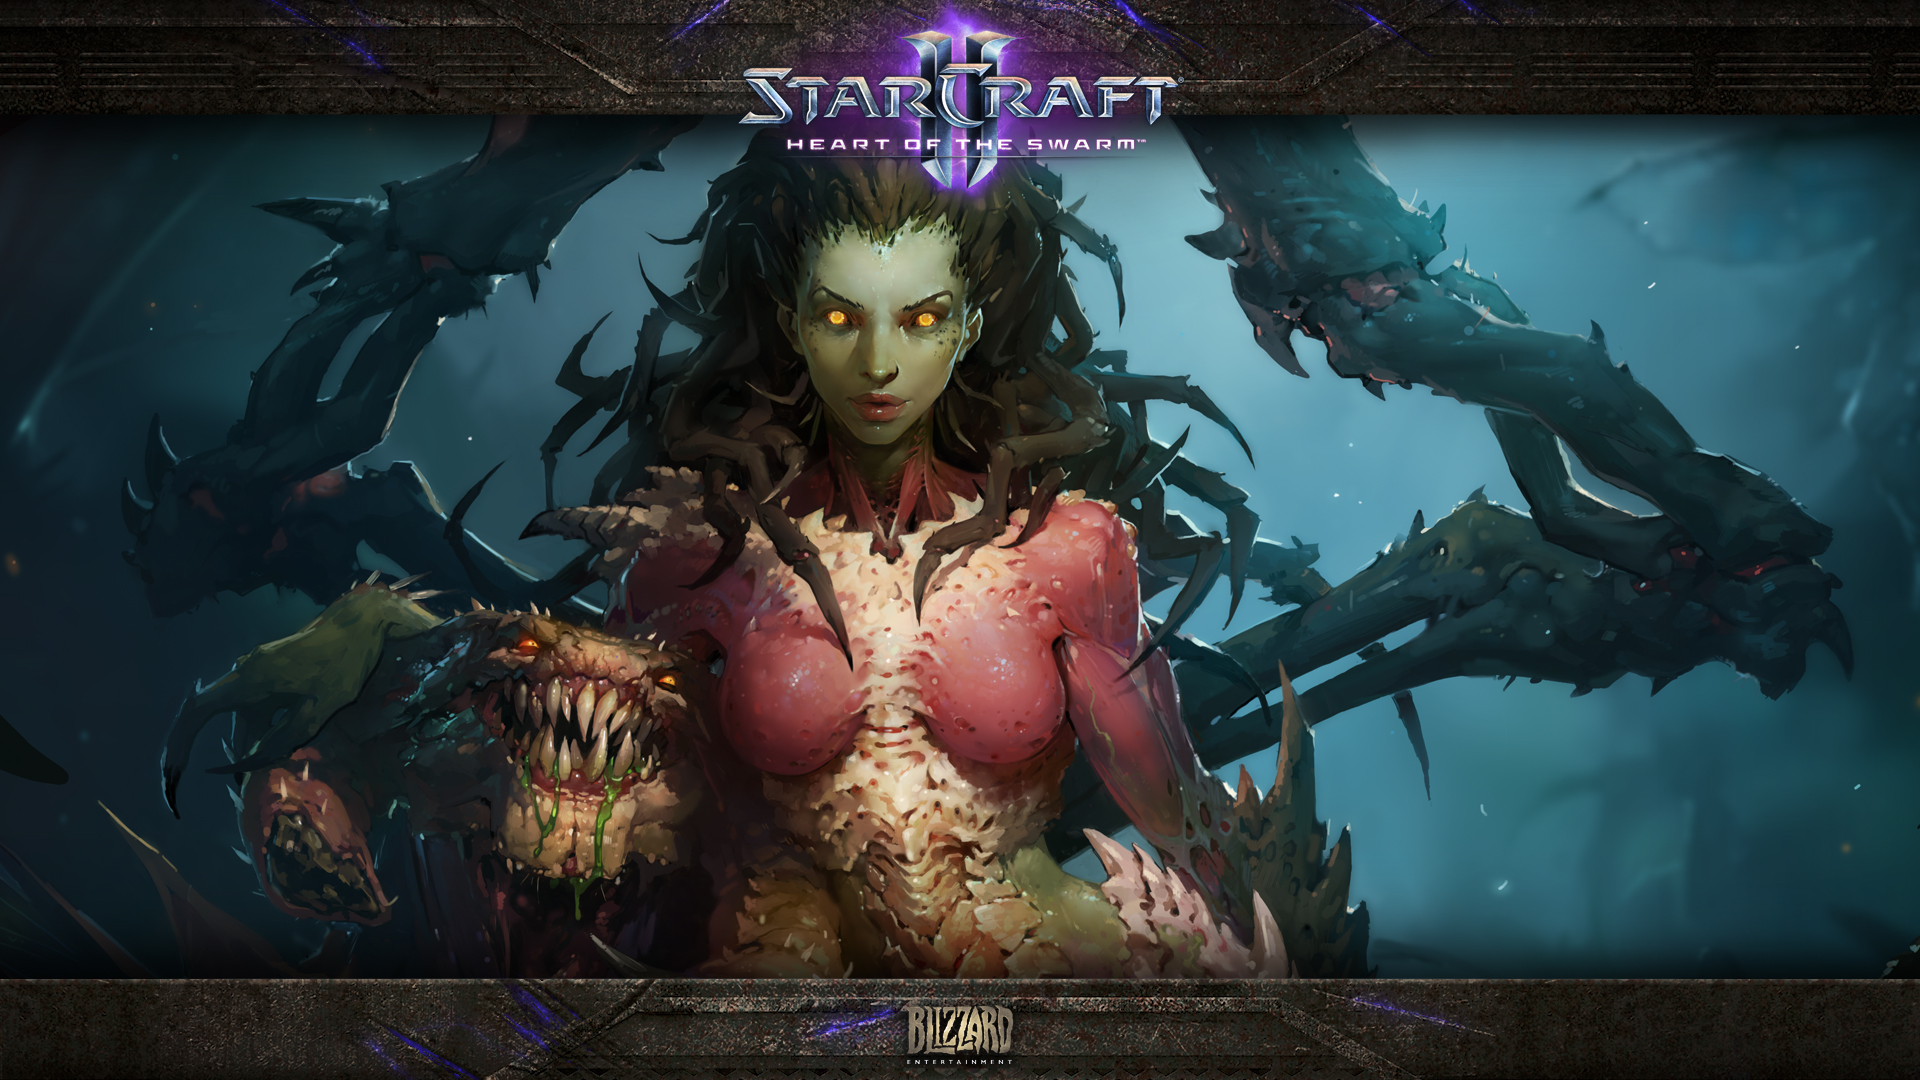 Starcraft 2 Heart of the Swarm wallpaper 7